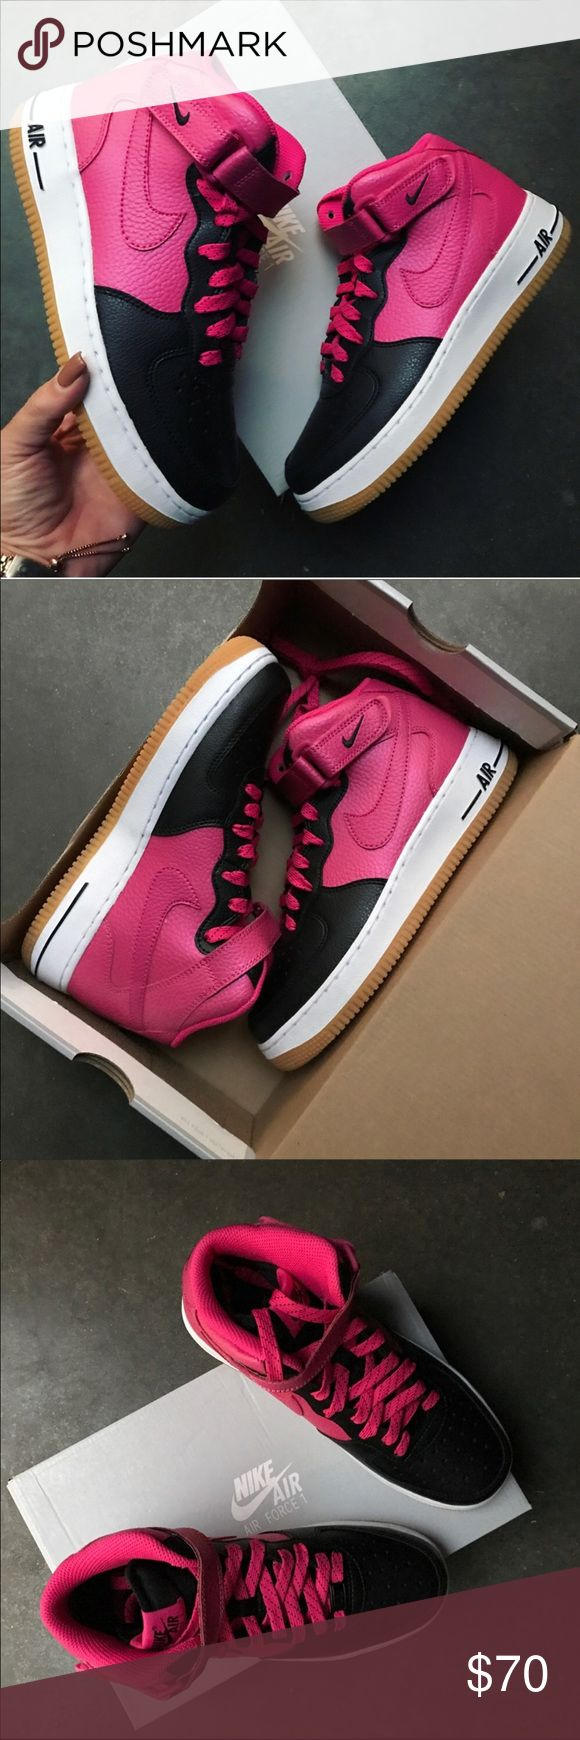 NWB 💕 NIKE AIR FORCE 1 | PINK BLACK LEATHER BRAND NEW, NIKE AIR FORCE 1 PINK BLACK LEATHER MID 💕 FULL ORIGINAL NIKE BOX! LAST PAIR!  ORDER YOUR WOMANS SHOE SIZE 6.5 youth = 8 WOMEN  ALL SIZES LISTED ACCORDING TO NIKE'S SIZE CHART. PLEASE KNOW YOUR YOUTH SIZE PRIOR TO PURCHASING. 💕  Ships same or next day from my smoke free home.   PRICED FIRM, offers will be considered through the offer button only. Bundle to save. 💕  100% authentic & direct from NIKE Nike Shoes Athletic Shoes